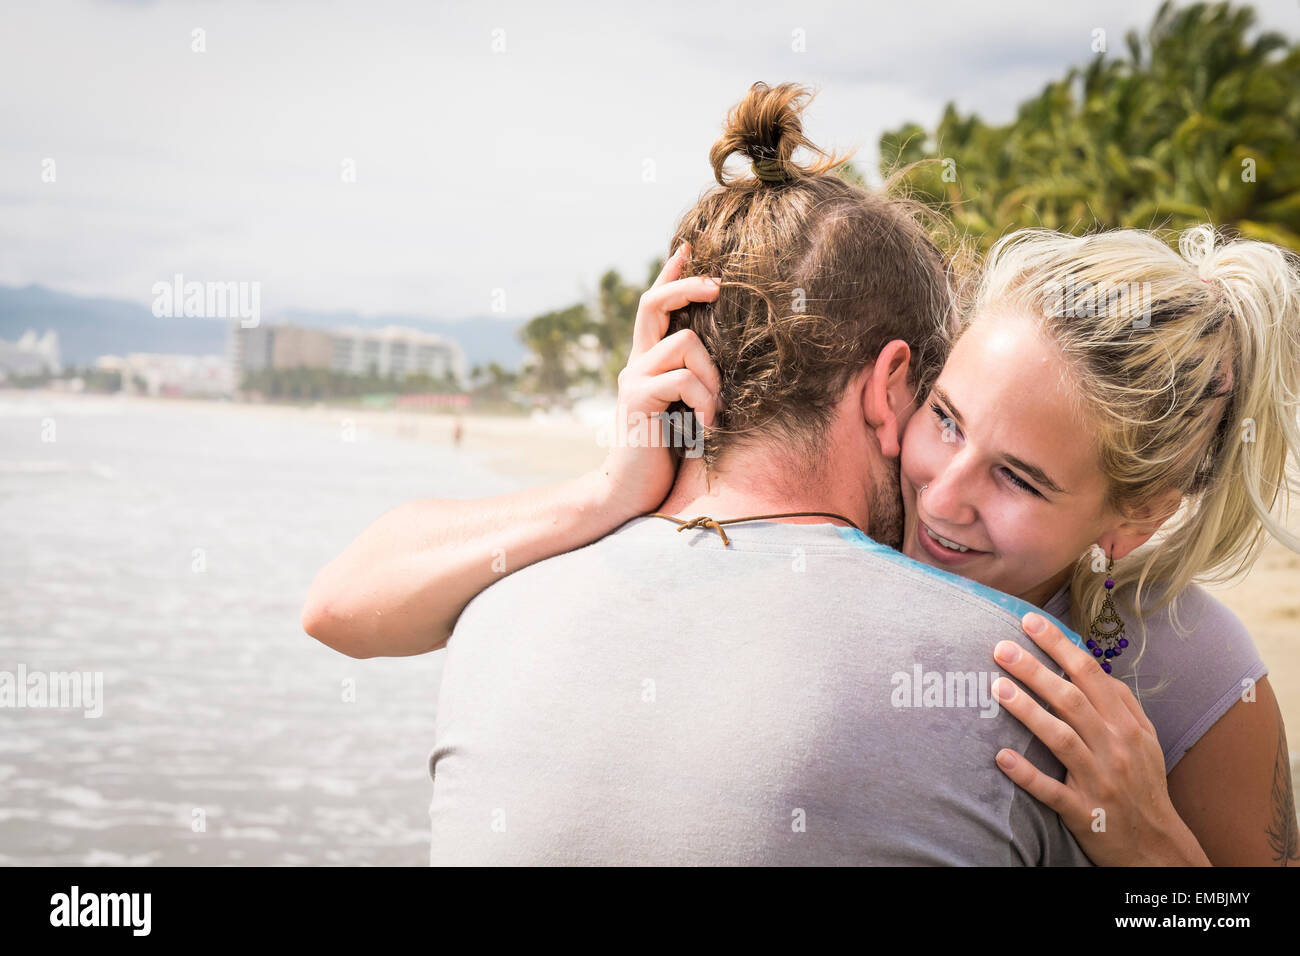 Young woman hugging young man, smiling, at a beach. Riviera Nayarit, Pacific Coast, Mexico - Stock Image